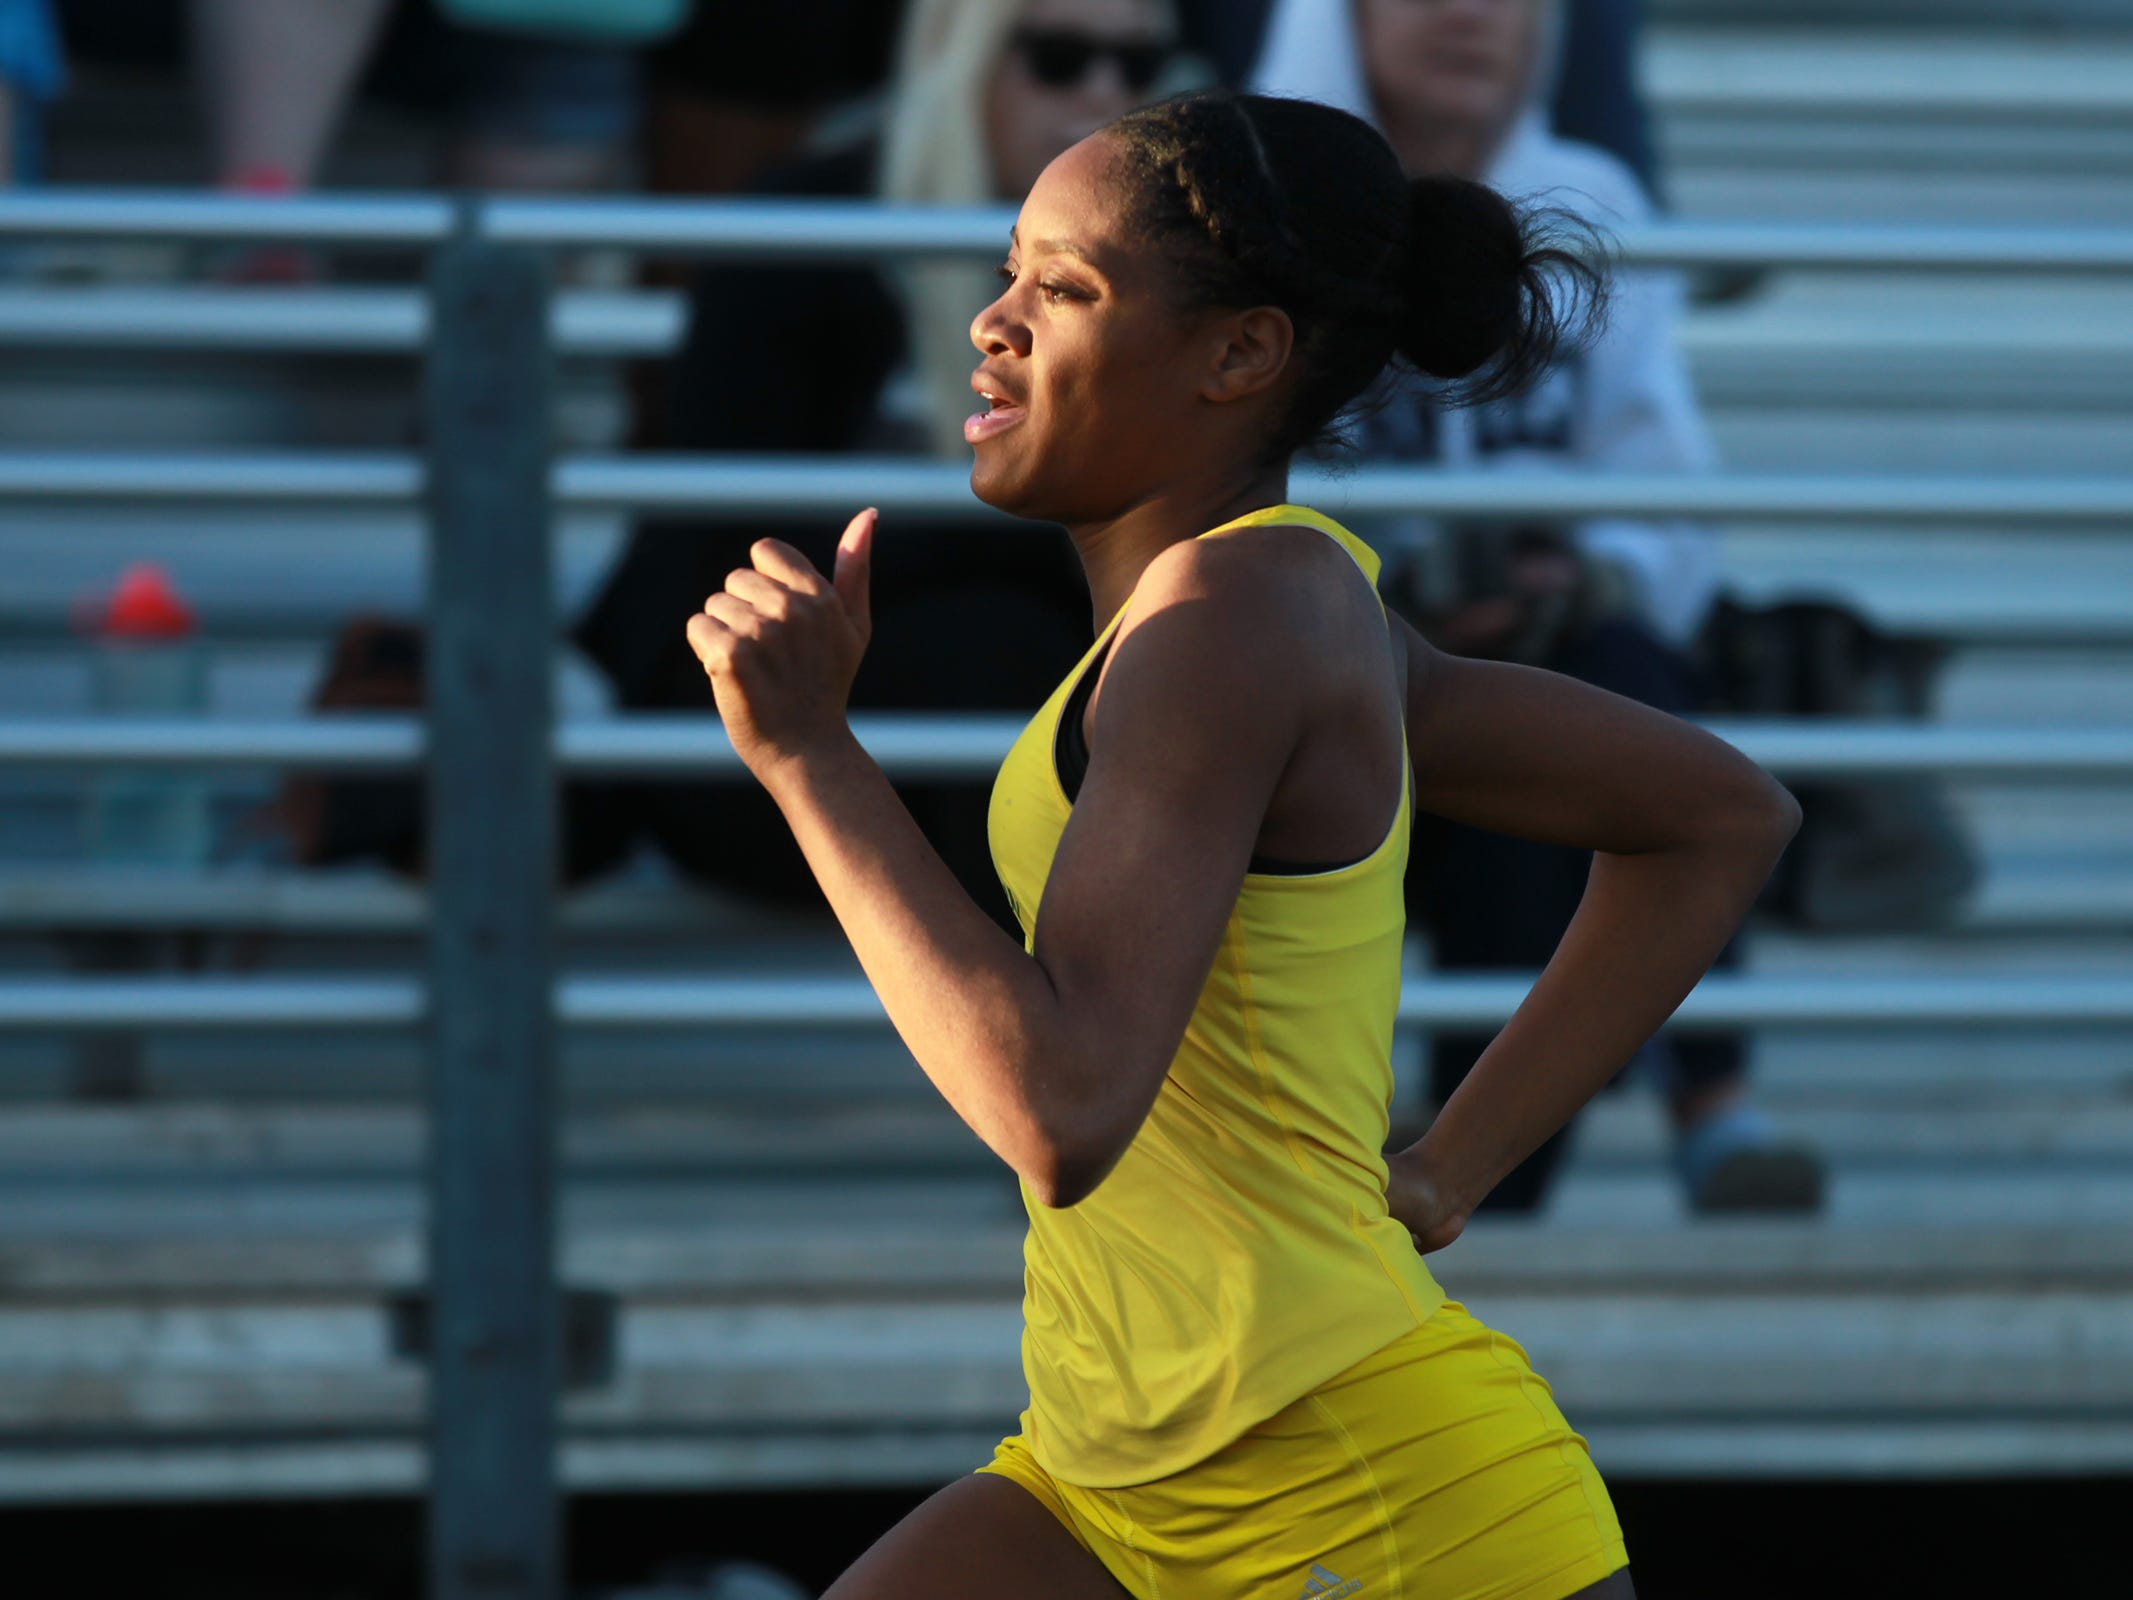 West High's Nia Basabe competes in the 200 meter dash at the Women of Troy Relays at West High on Tuesday, March 31, 2015. David Scrivner / Iowa City Press-Citizen